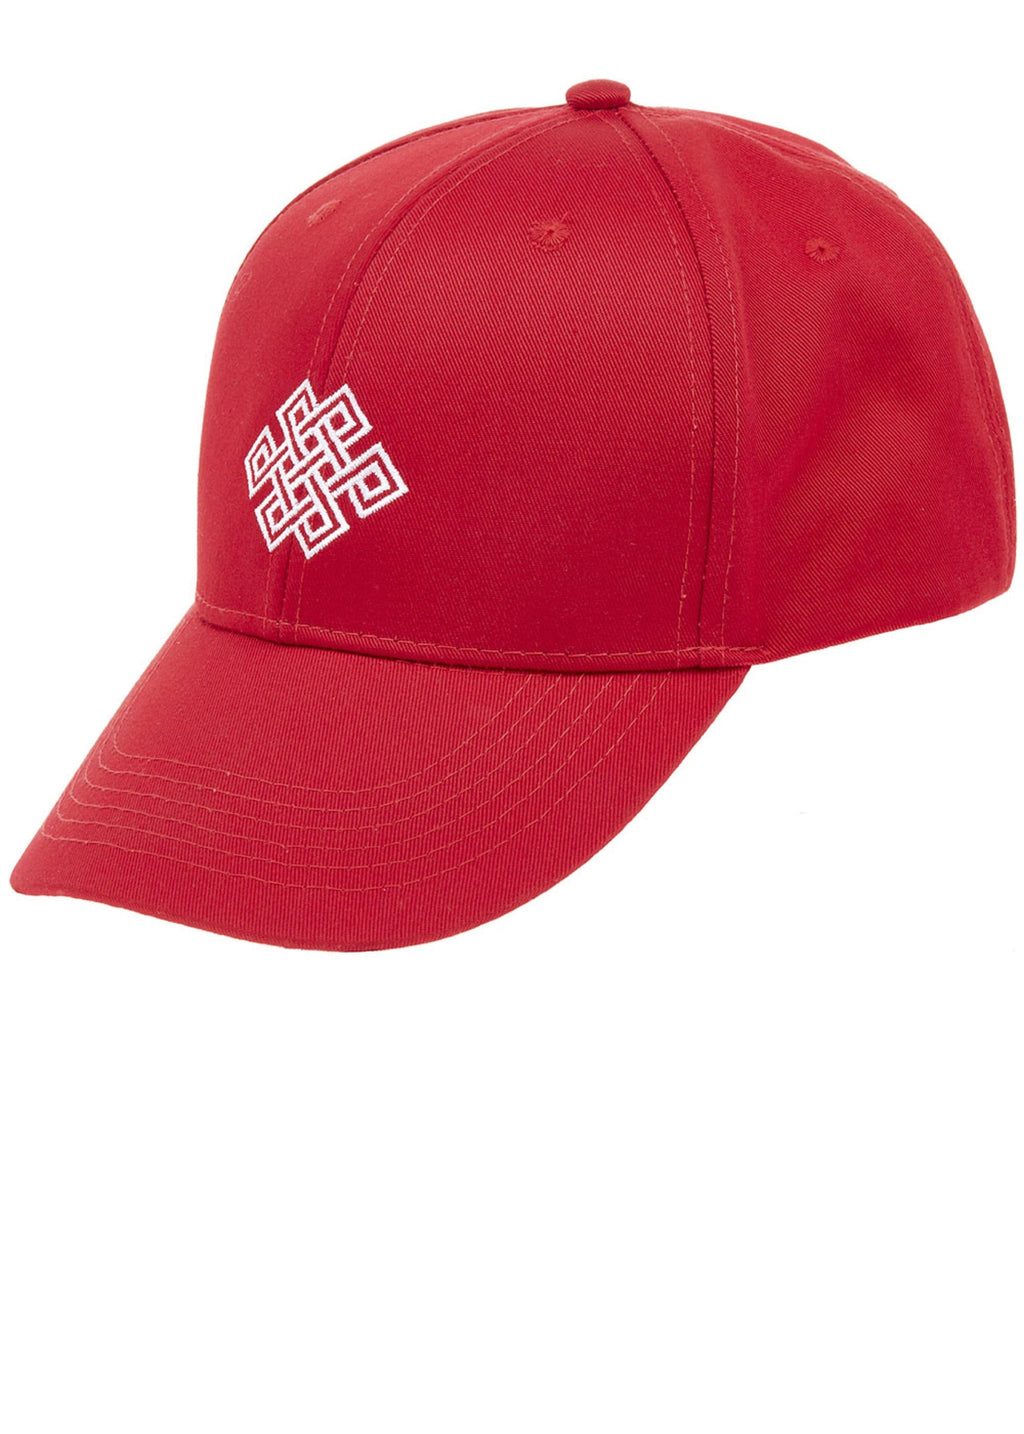 Boys Red Baseball Cap With Logo Embroidery - Front